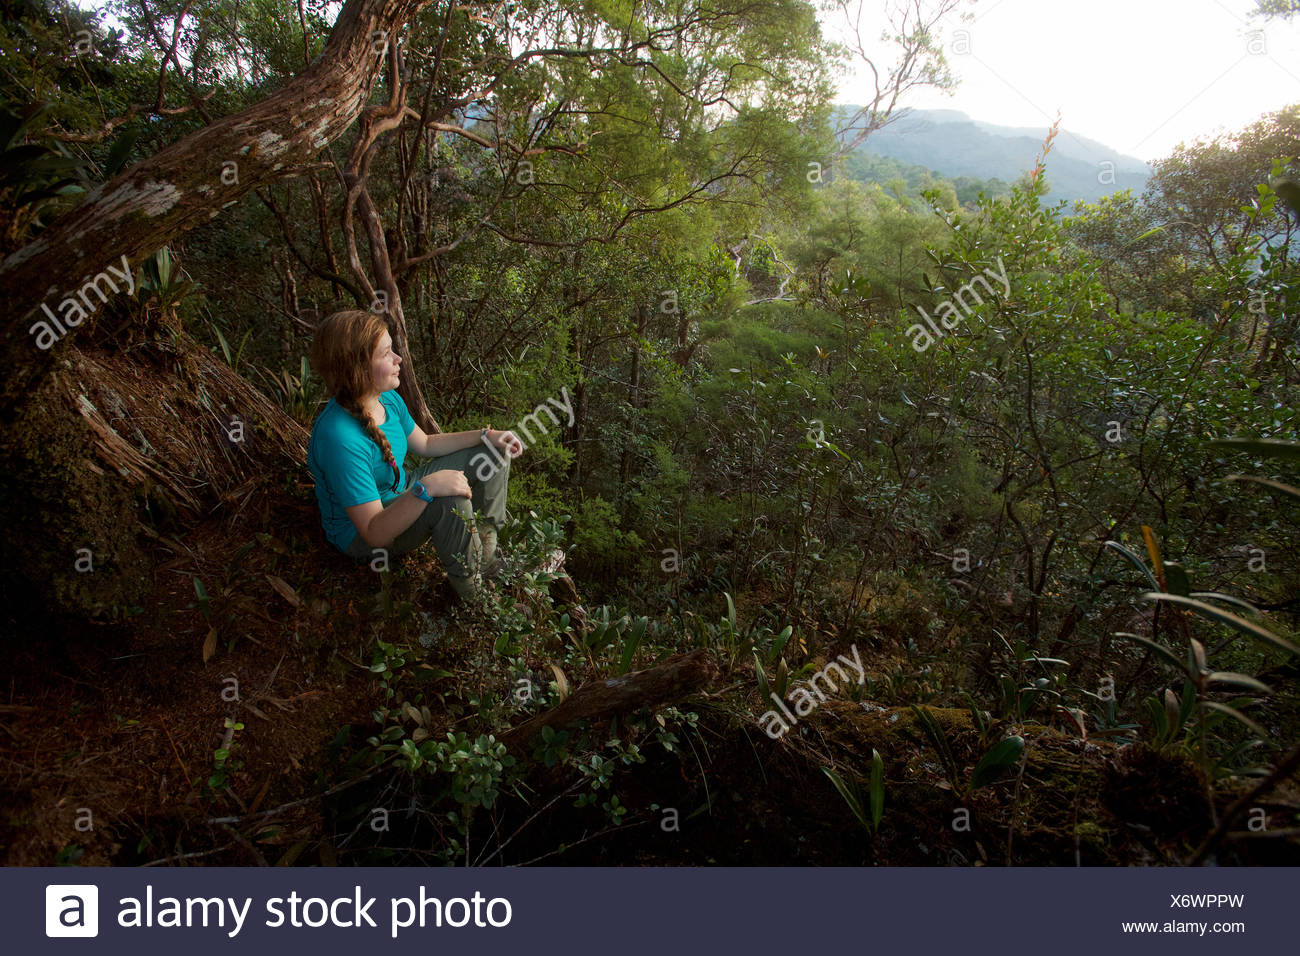 A girl watches the sunrise from Mossy Rock, a high point on the ridge in Gunung Palung National Park. - Stock Image